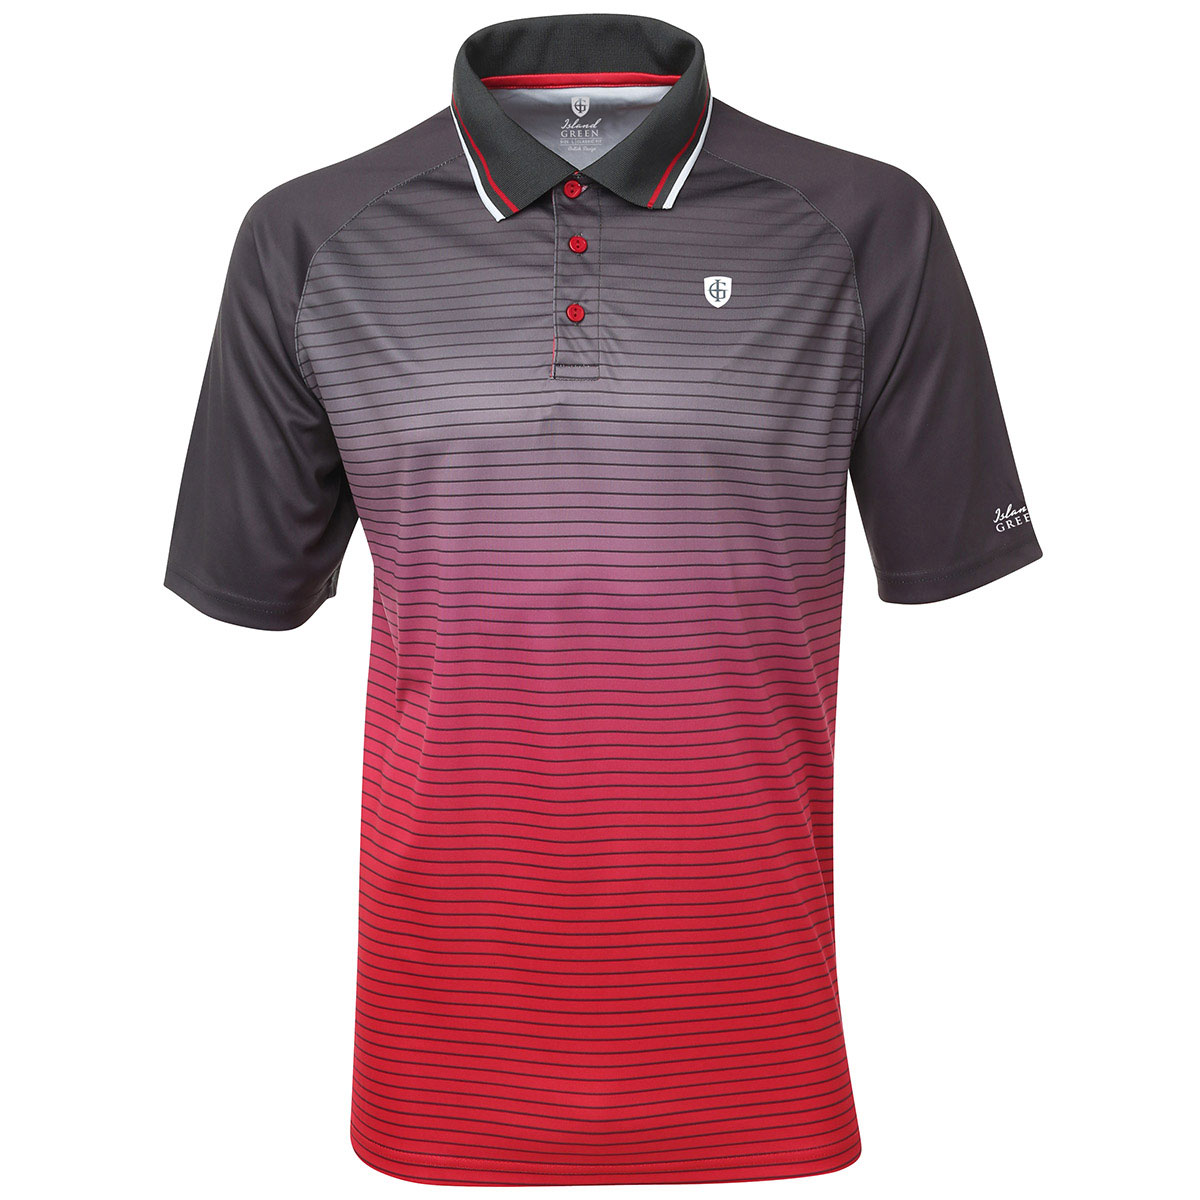 48 off rrp island green 2016 mens igts1464 performance for Polo golf shirts for men